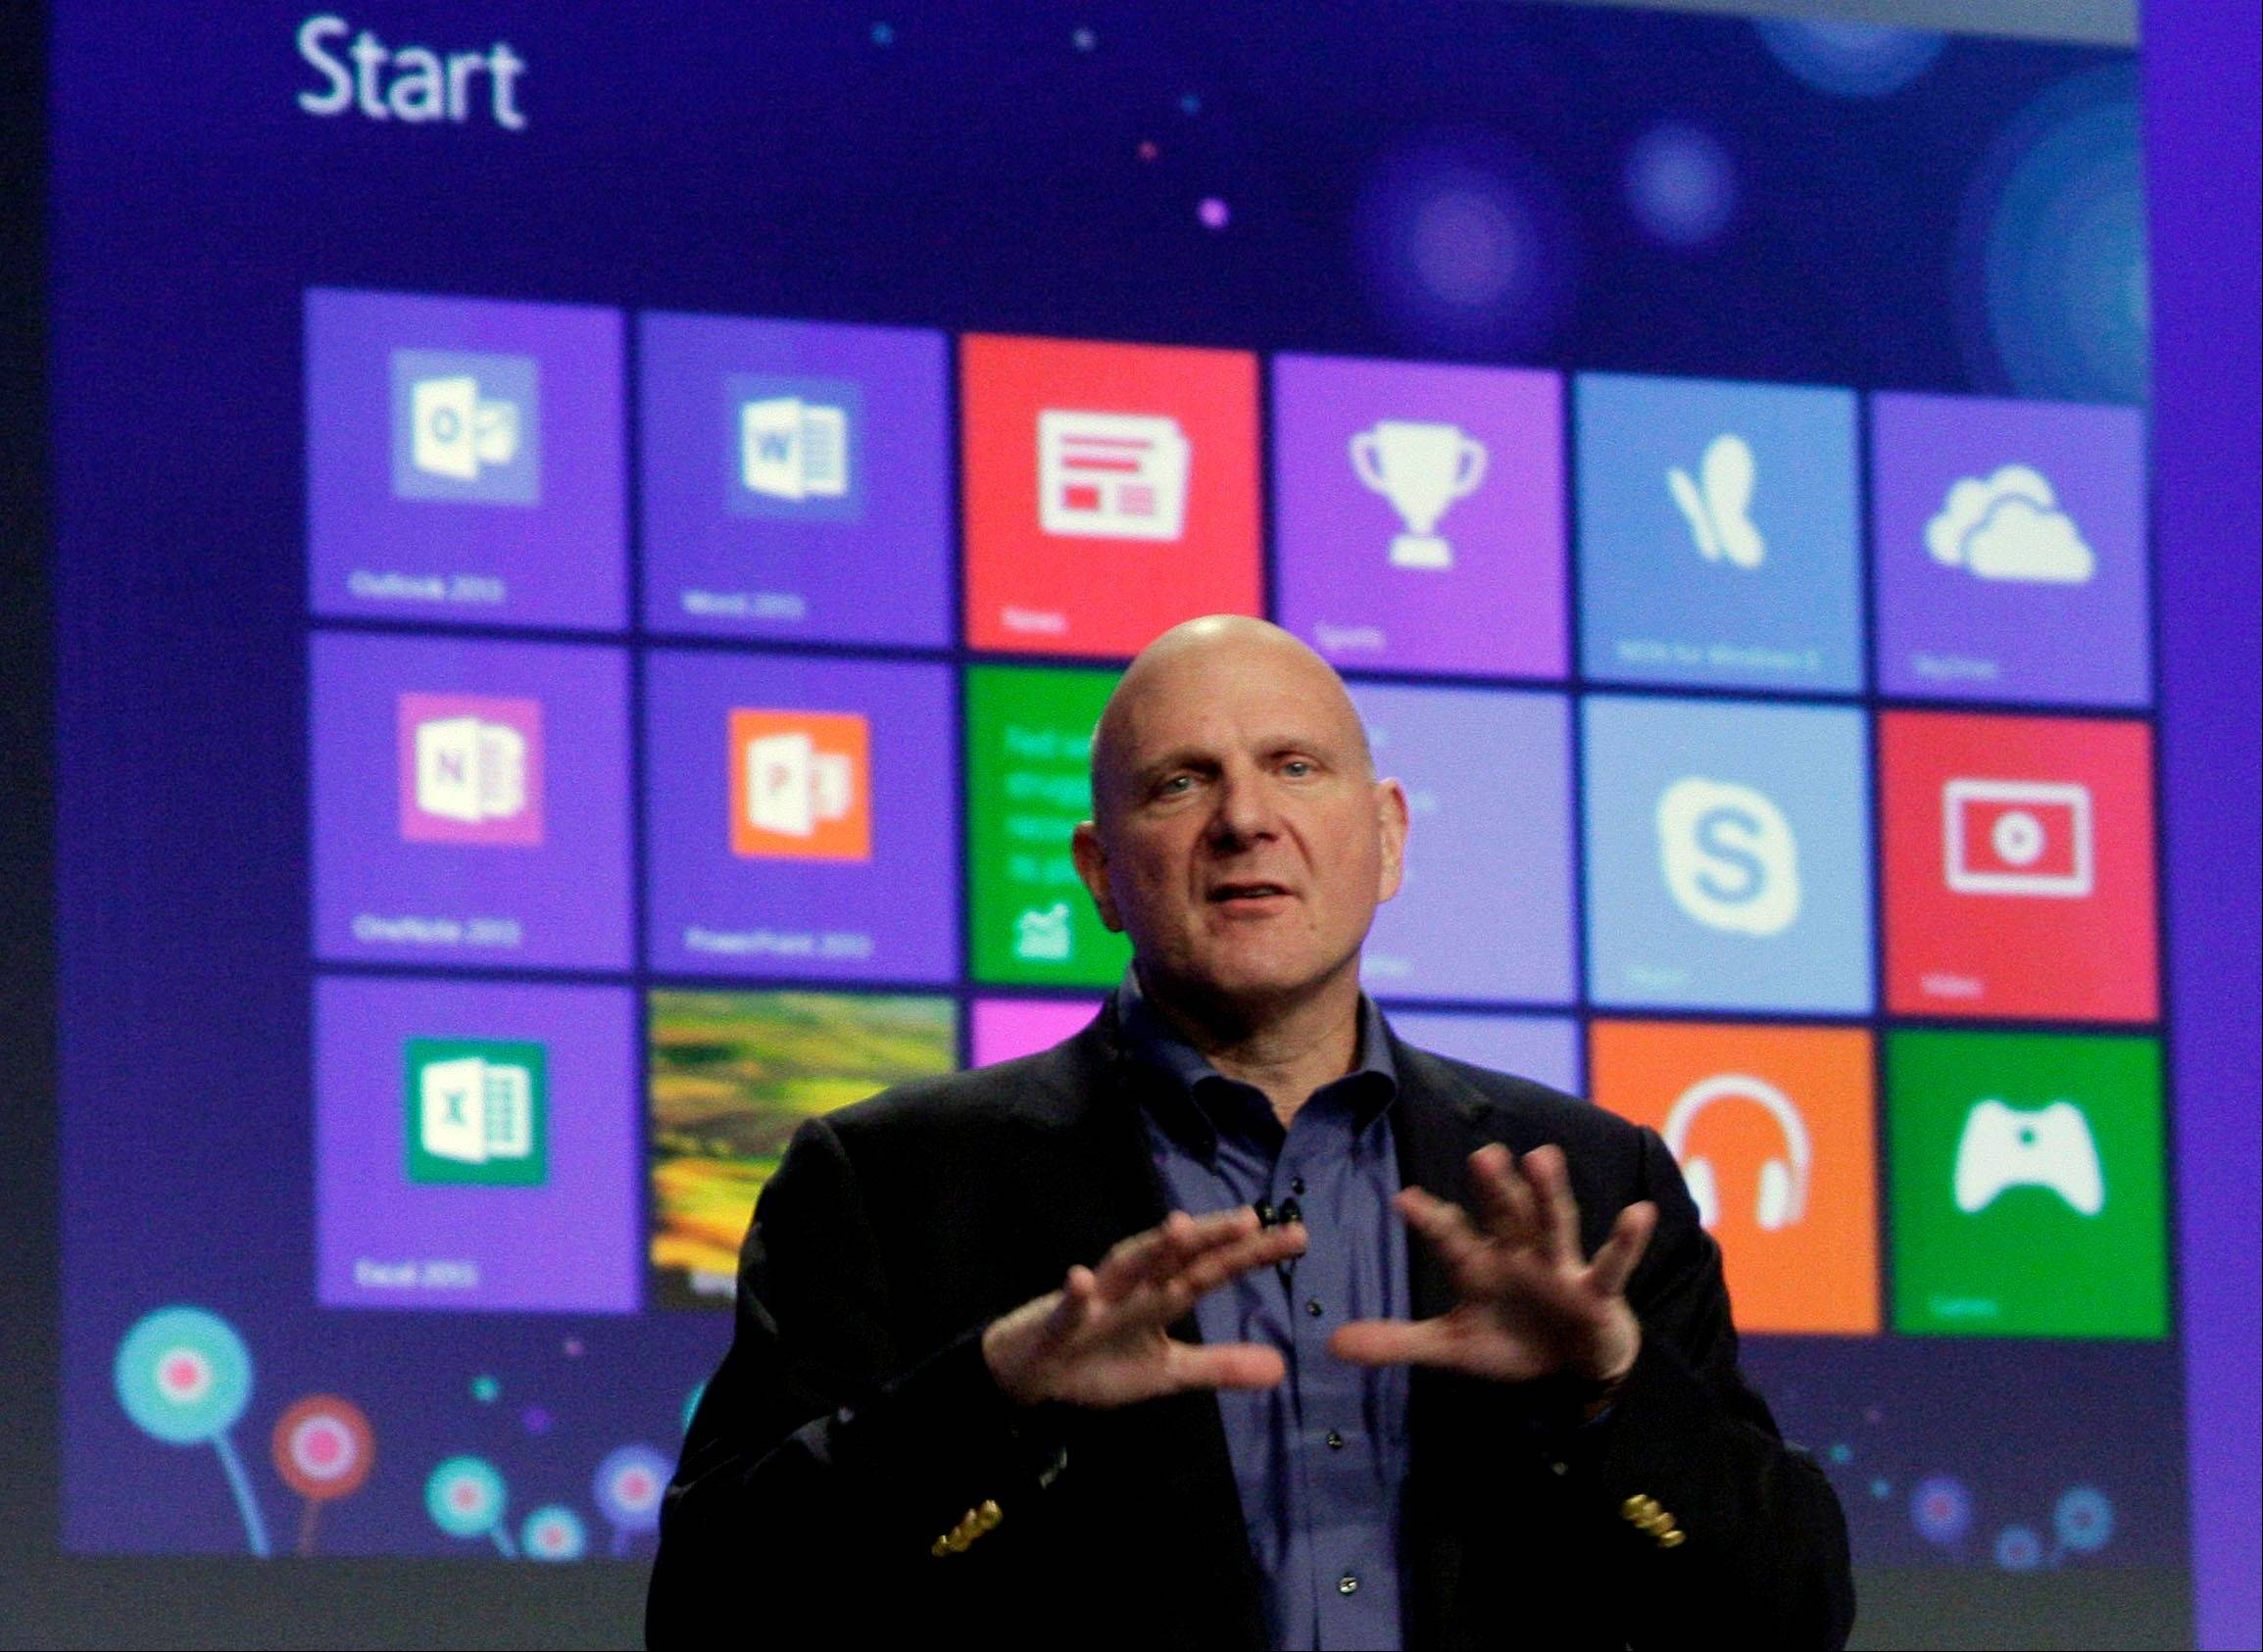 Microsoft CEO Steve Ballmer gives his presentation at the launch of Microsoft Windows 8, in New York, Thursday, Oct. 25, 2012. Windows 8 is the most dramatic overhaul of the personal computer market�s dominant operating system in 17 years.